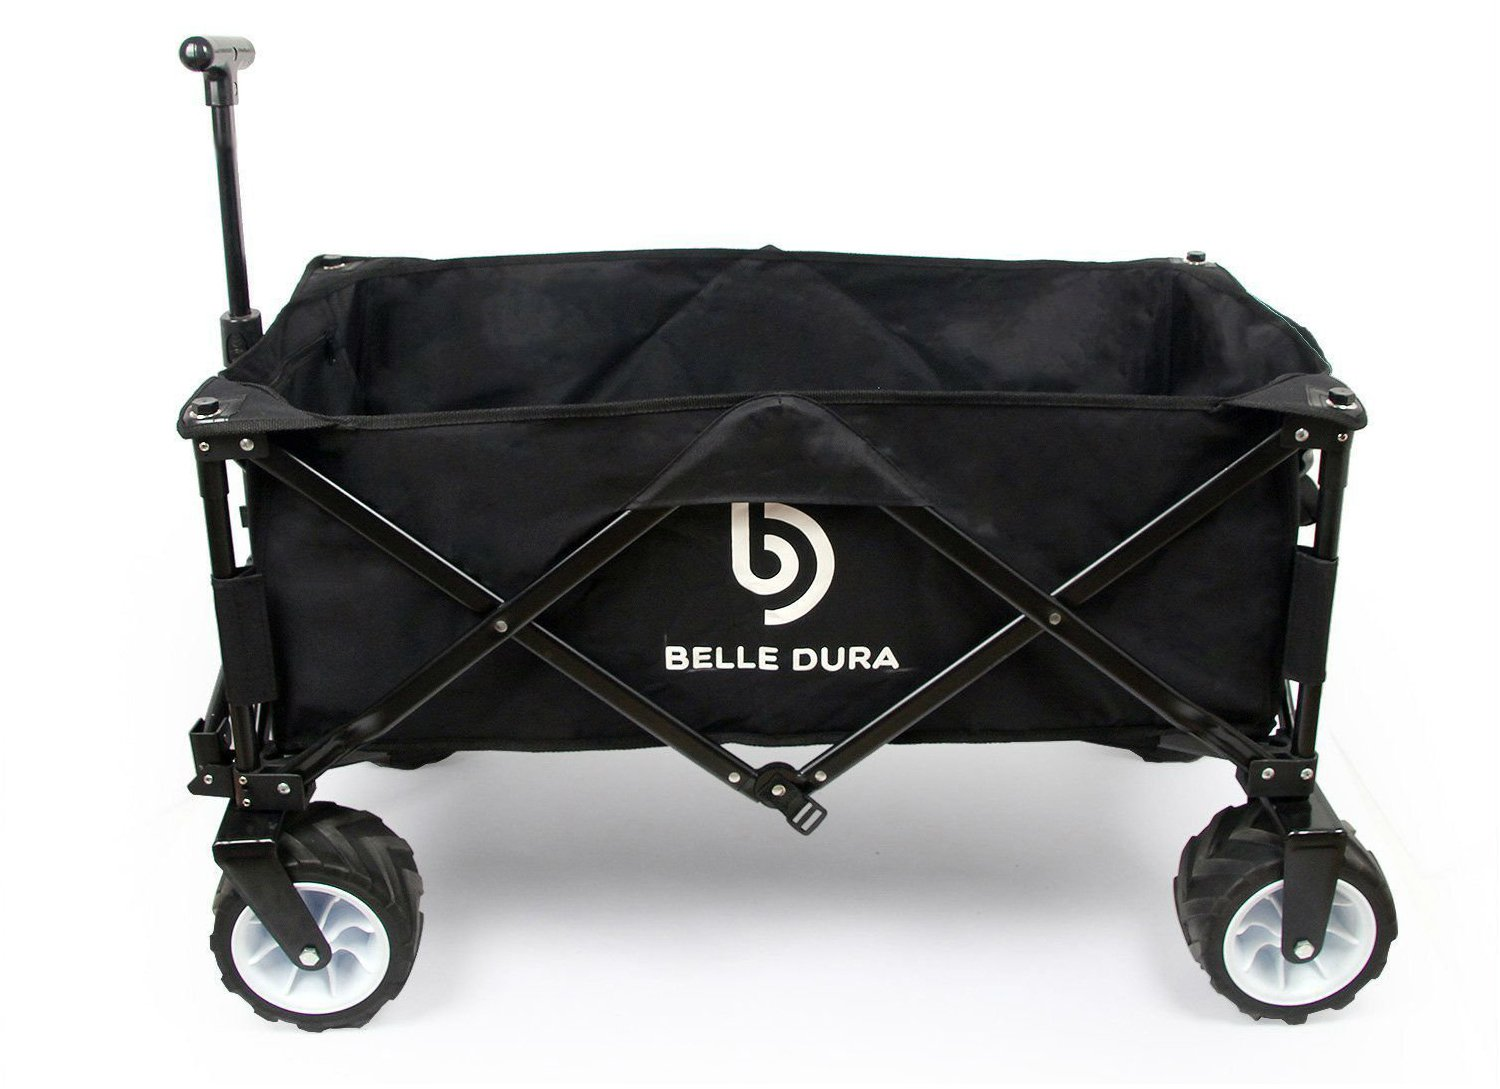 Artouch Folding Wagons, Collapsible Camping Utility Beach Cart Black With  Beach Wheels And Sturdy Steel